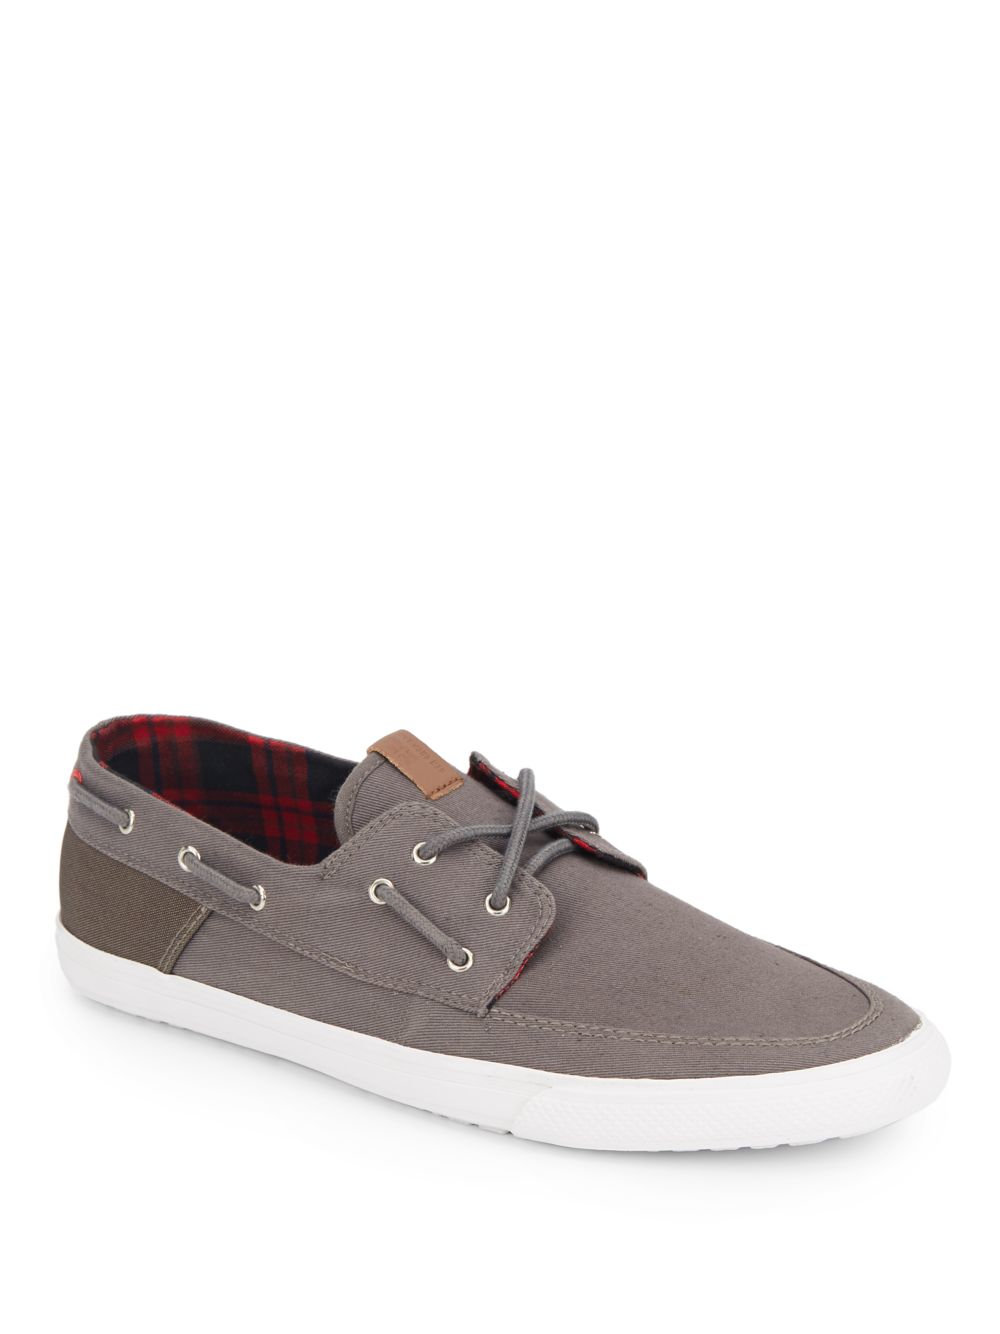 Ben Sherman Smith Canvas Boat Shoes In Gray For Men Lyst